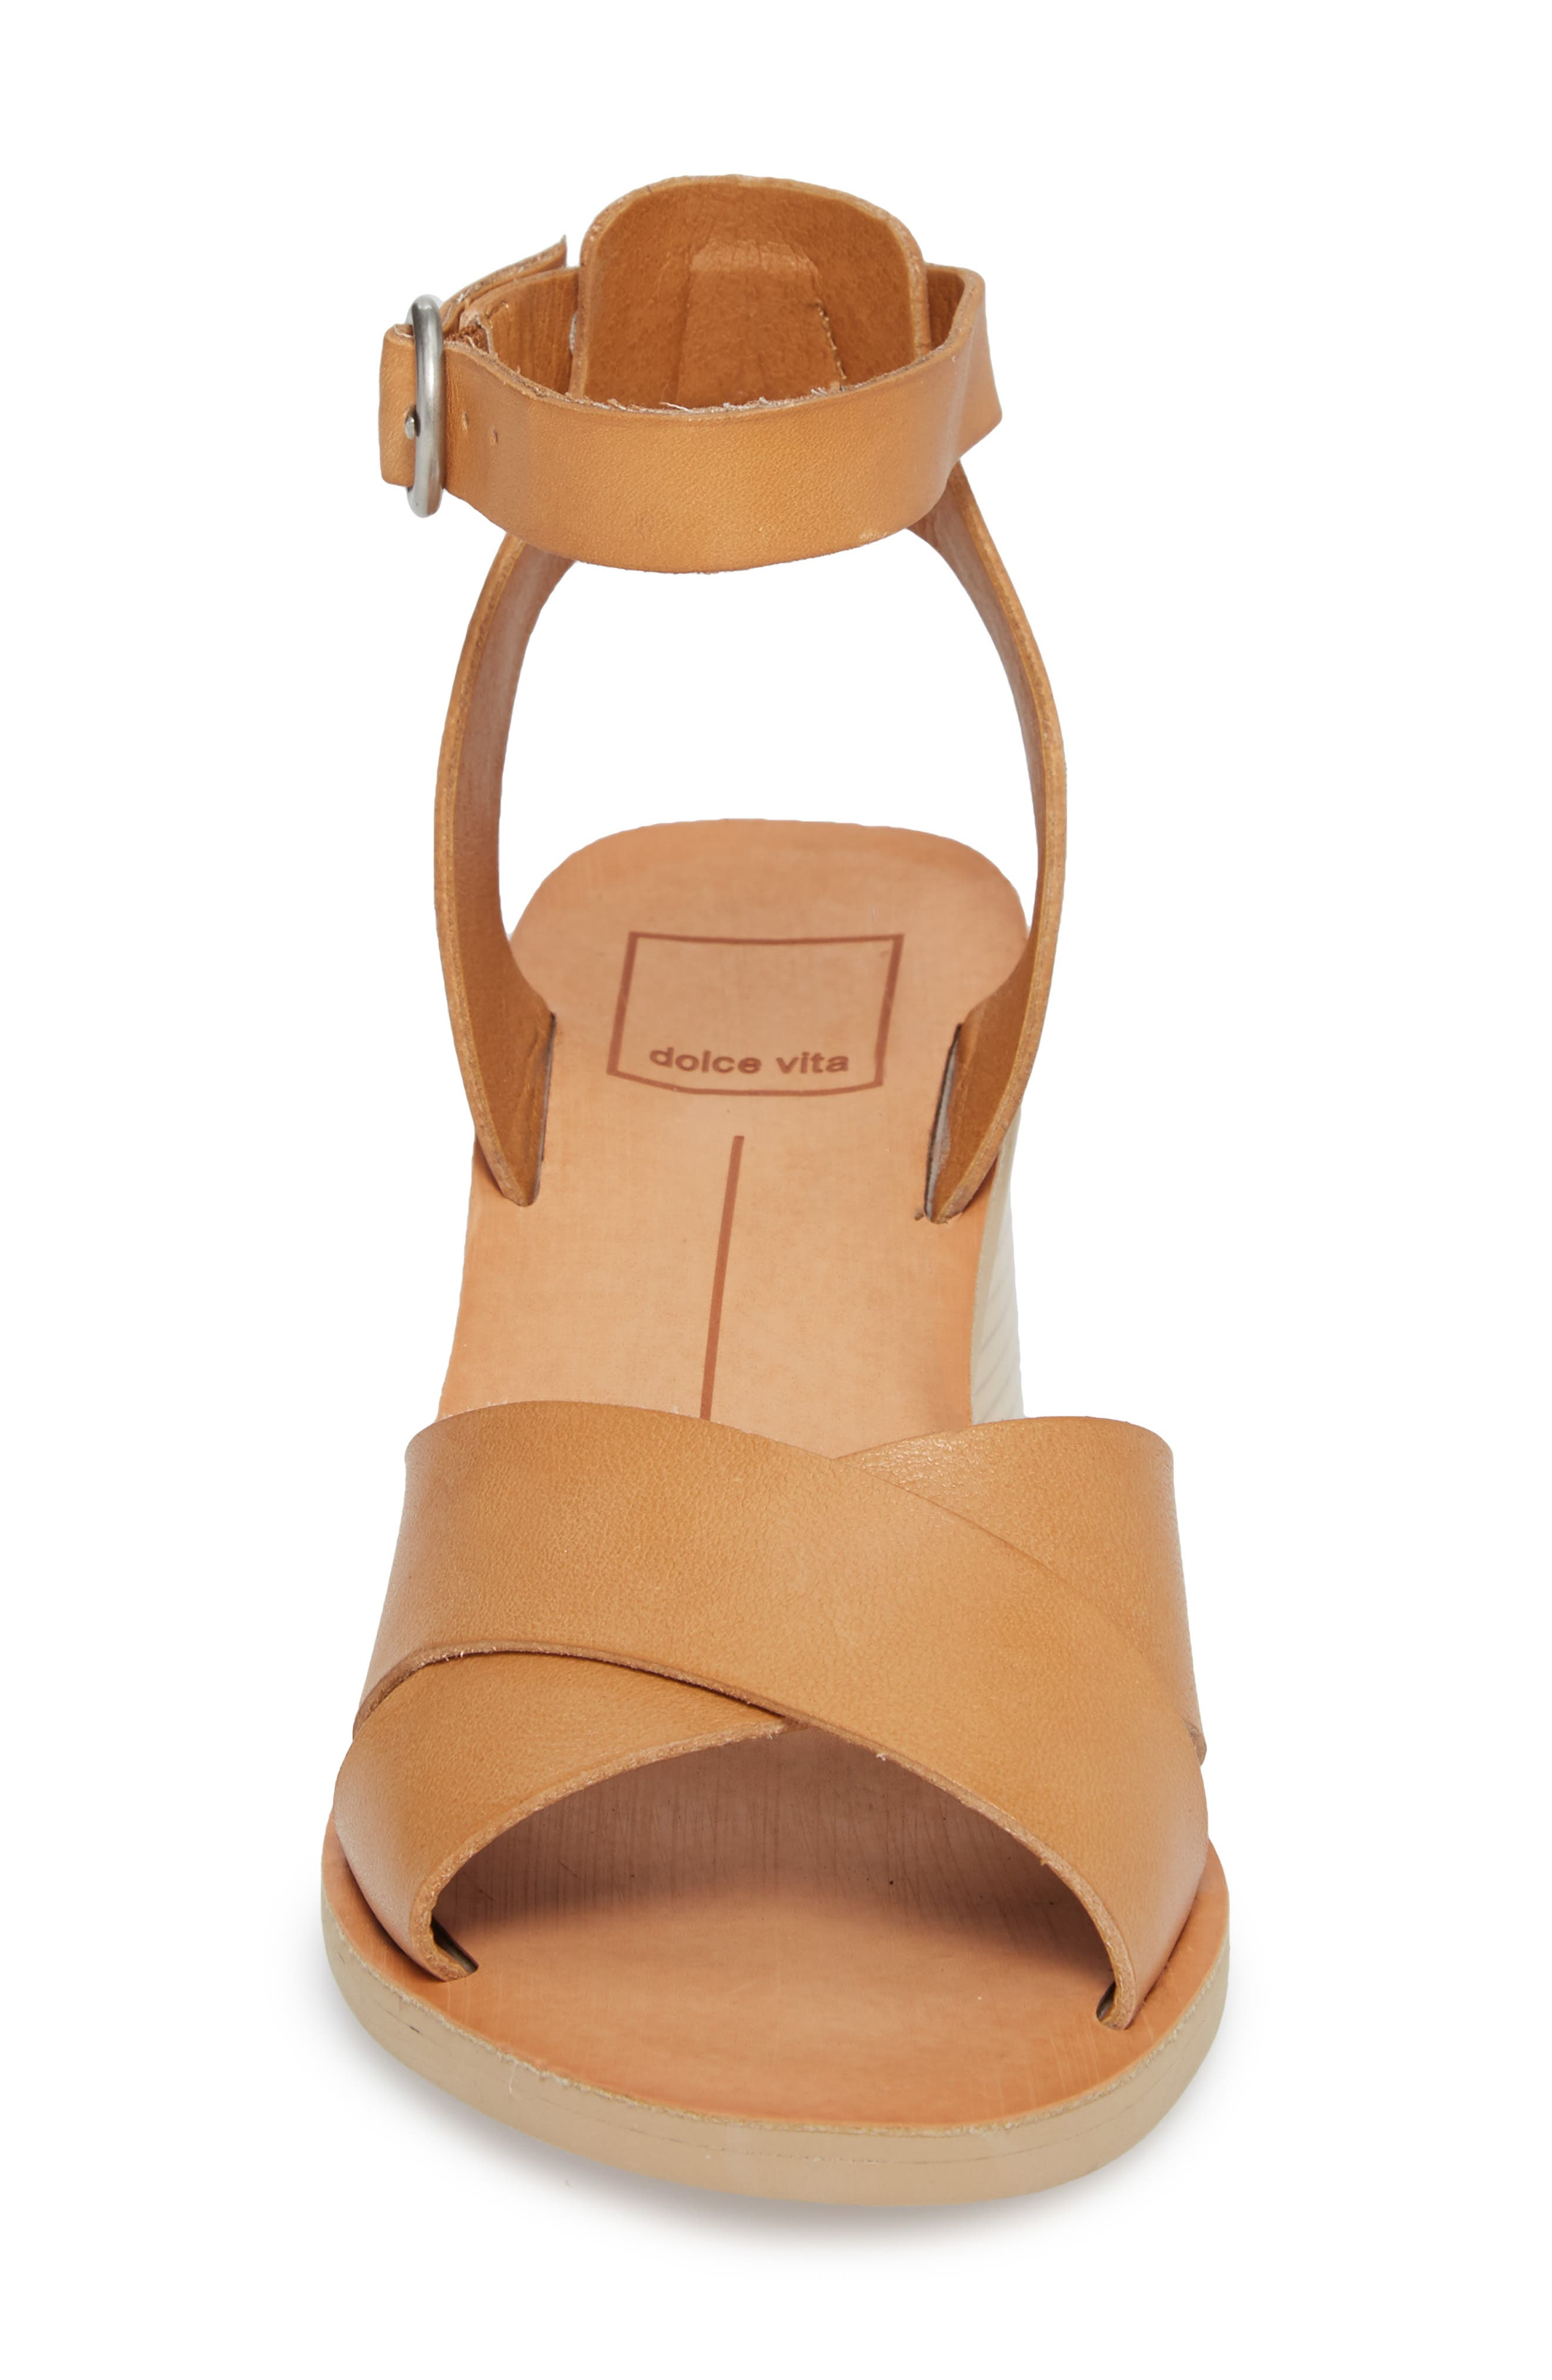 Roman Flared Heel Sandal,                             Alternate thumbnail 4, color,                             Caramel Leather